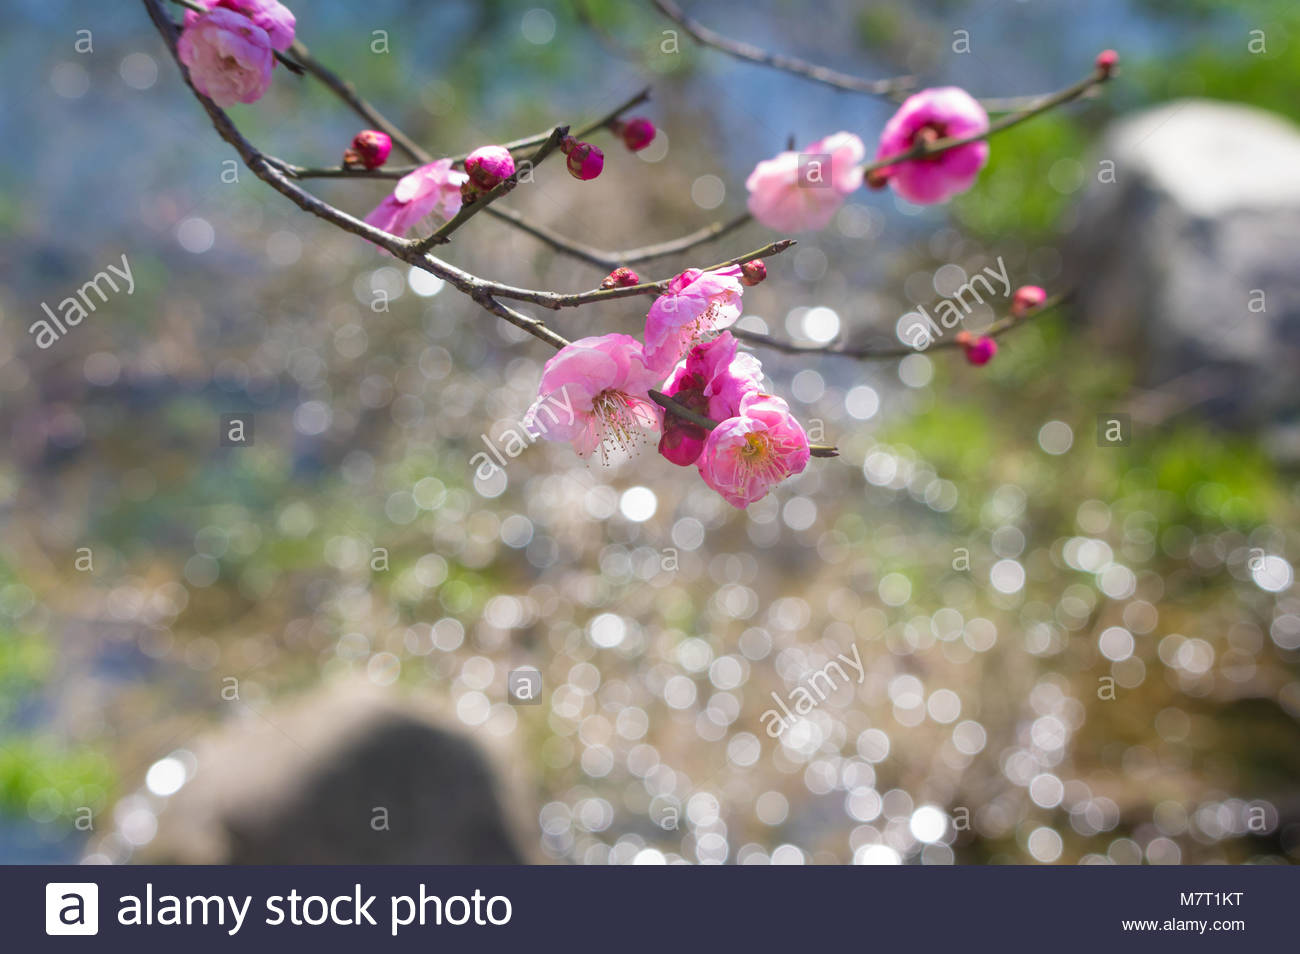 Early spring plum blossom garden in China - Stock Image